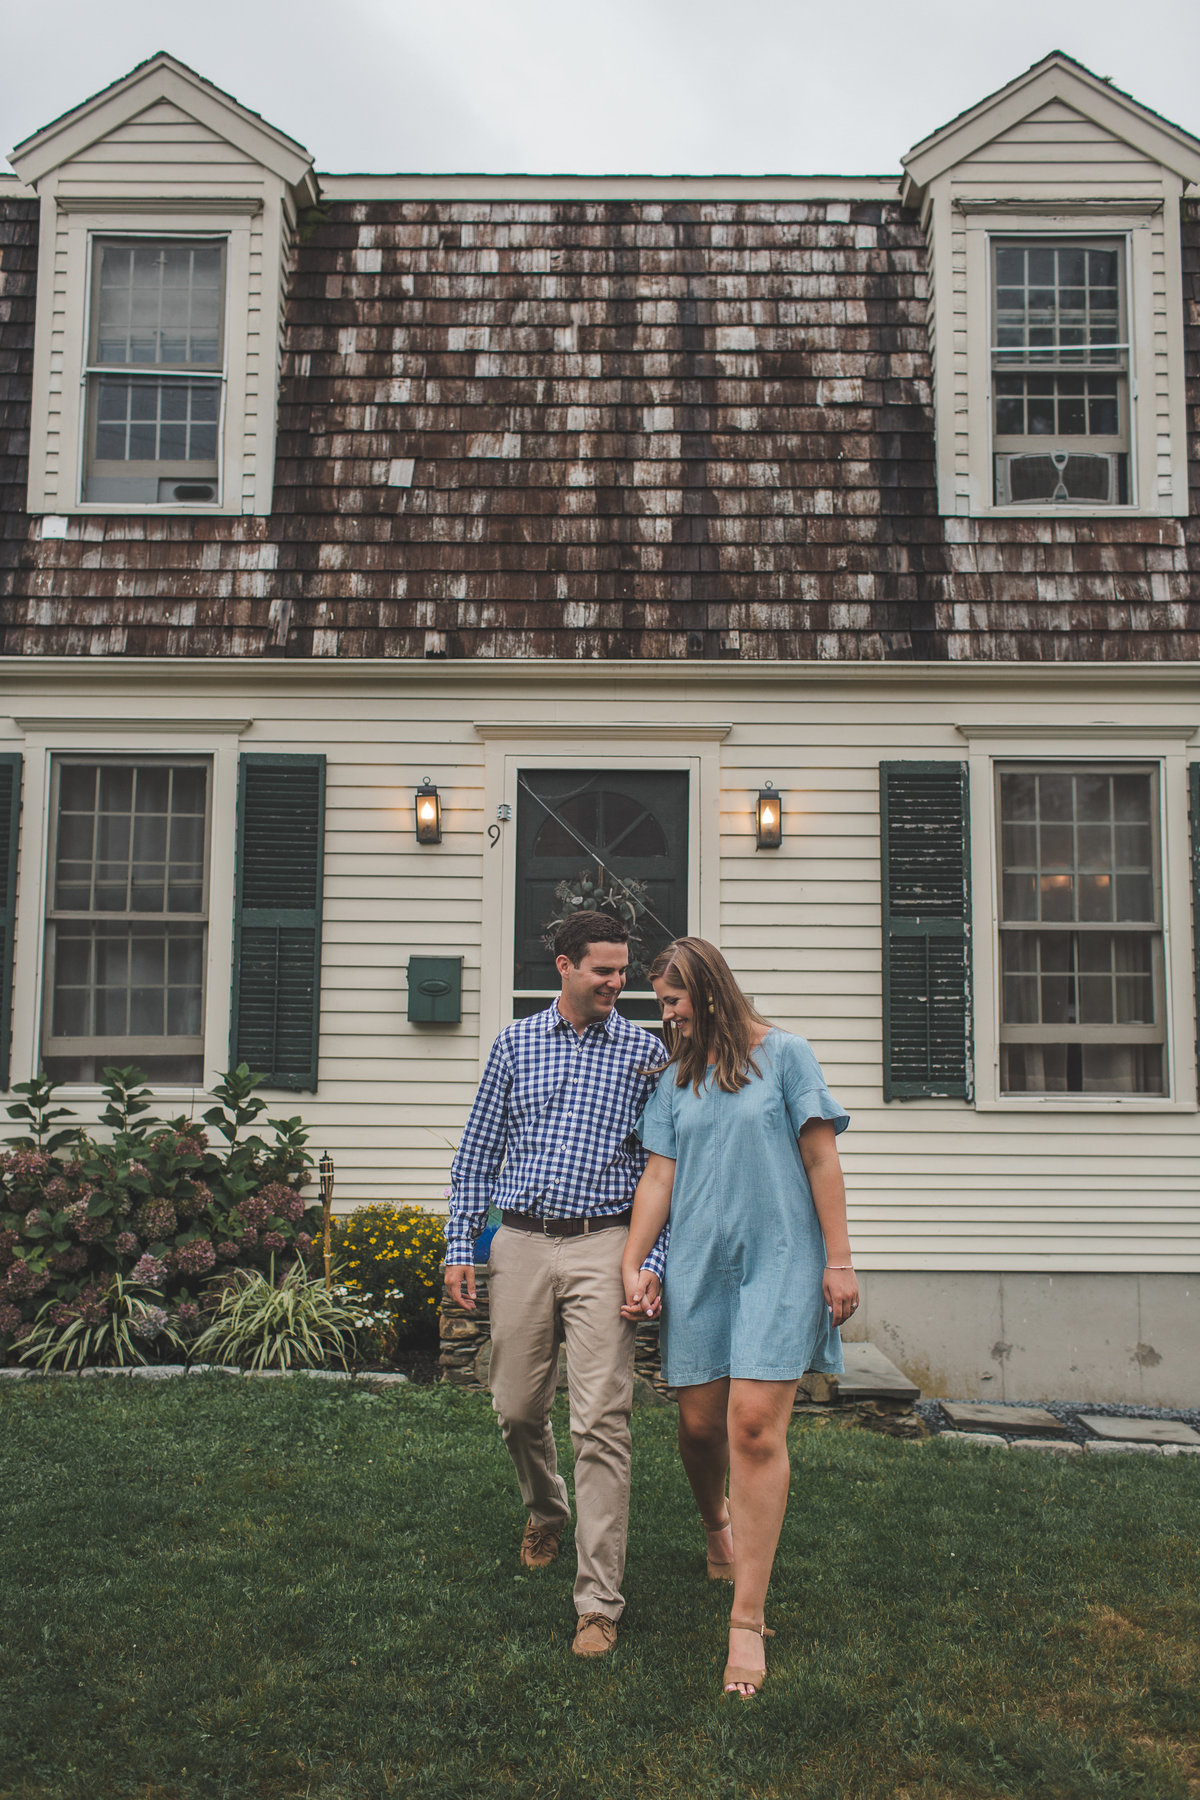 Newport_Rhode_Island_engagement_session_About_Time_Photography_photo_6